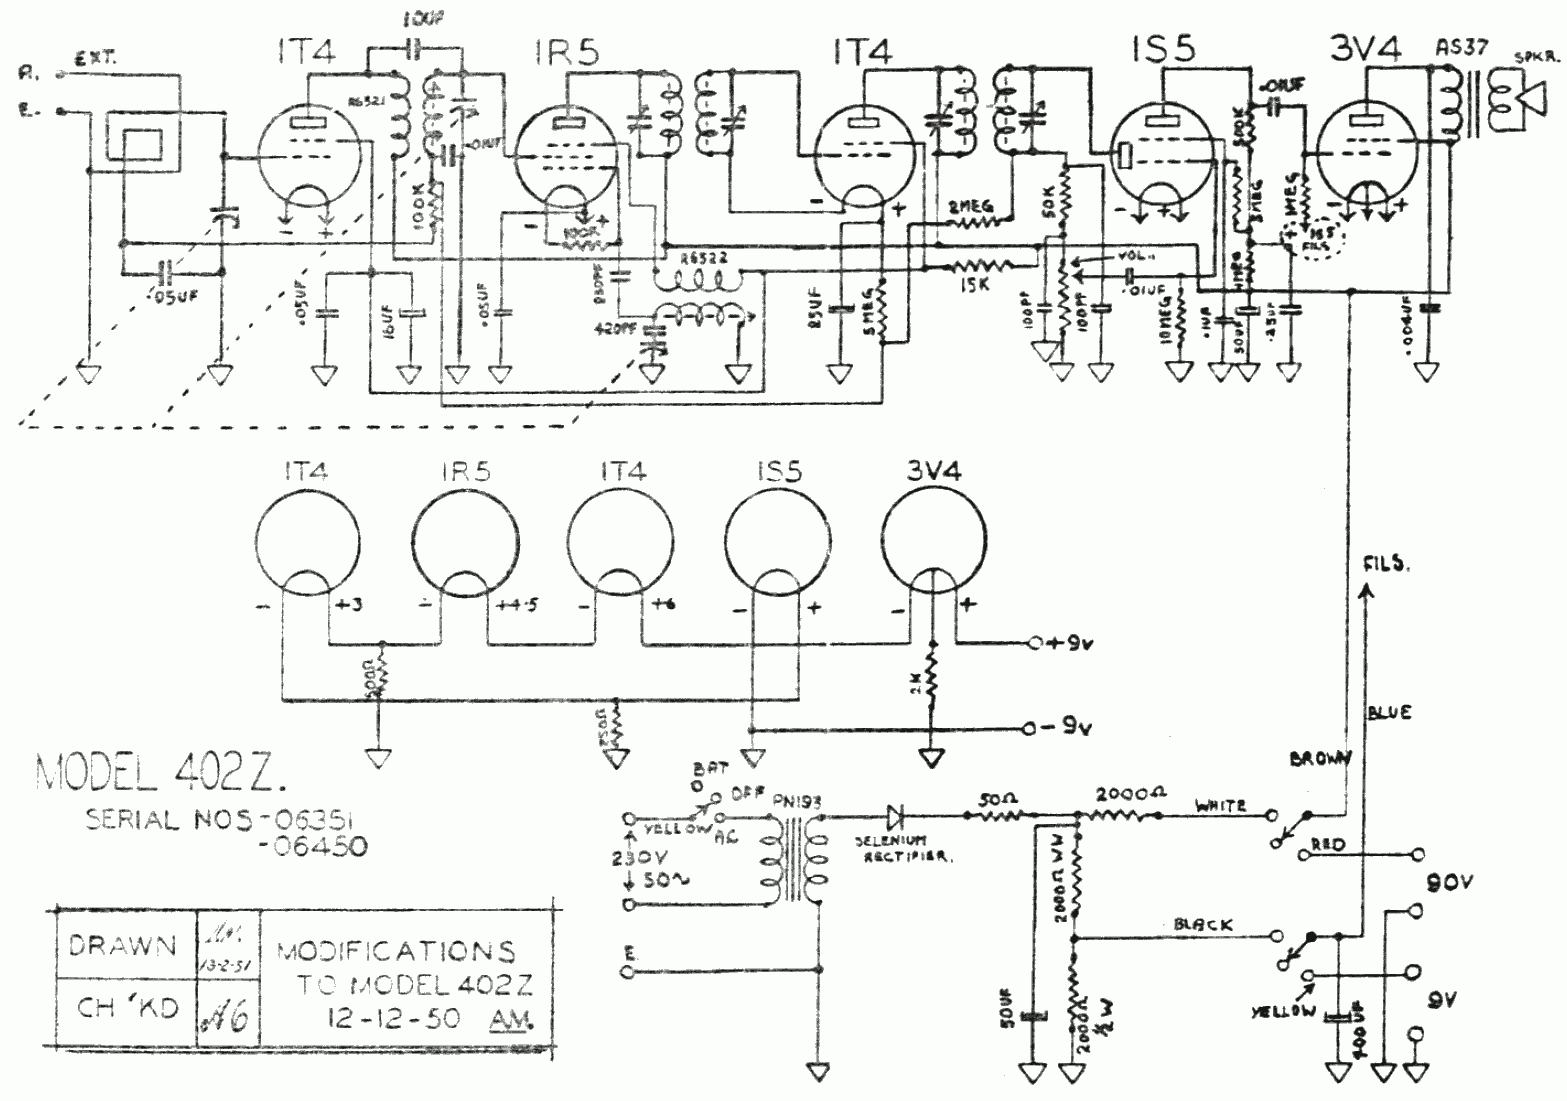 1948 Columbus model 402Z Schematic